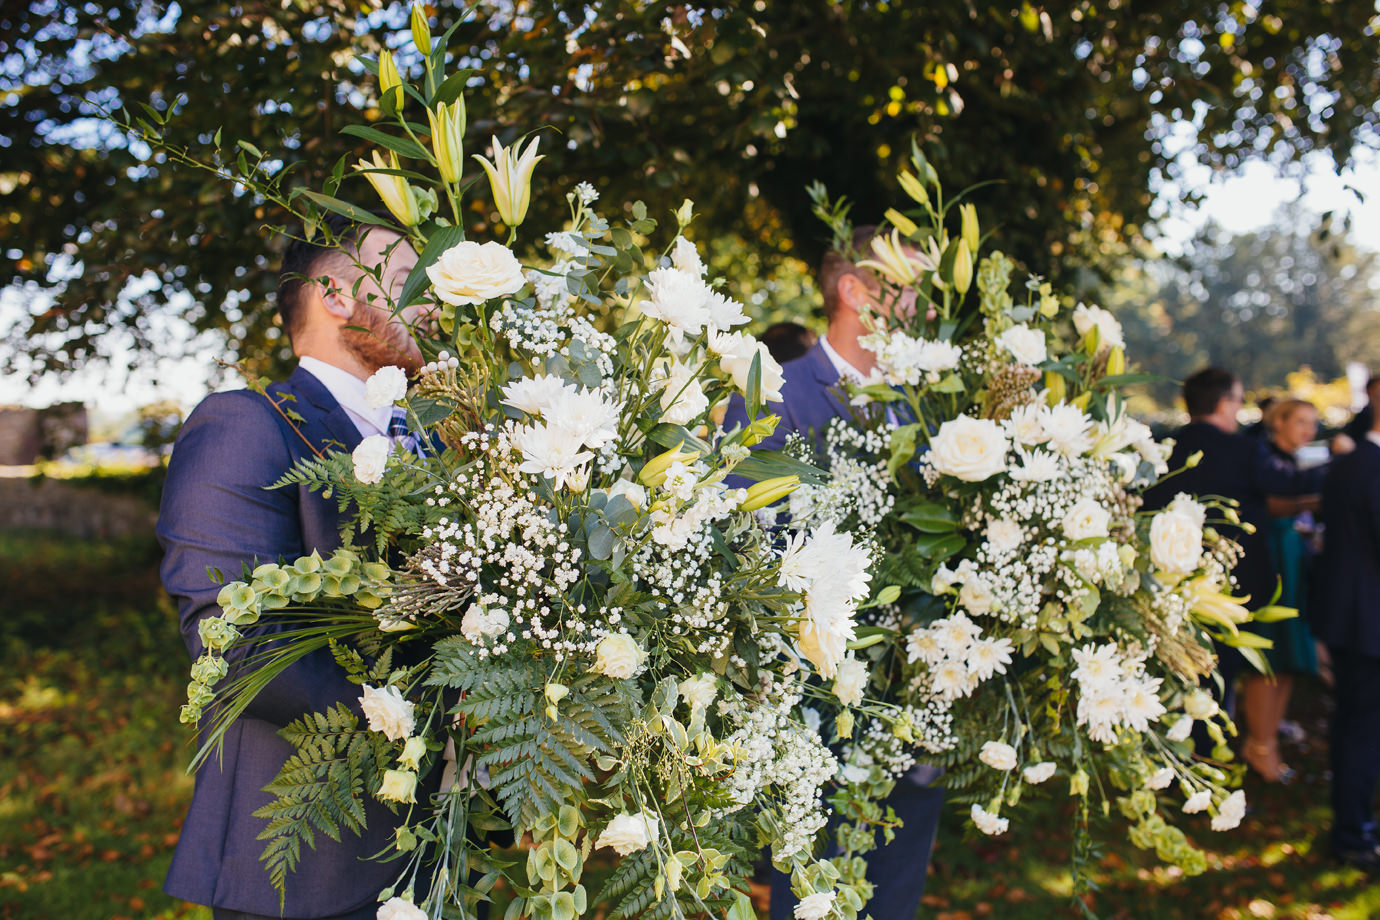 Grooms men moving the flowers documentary wedding photography